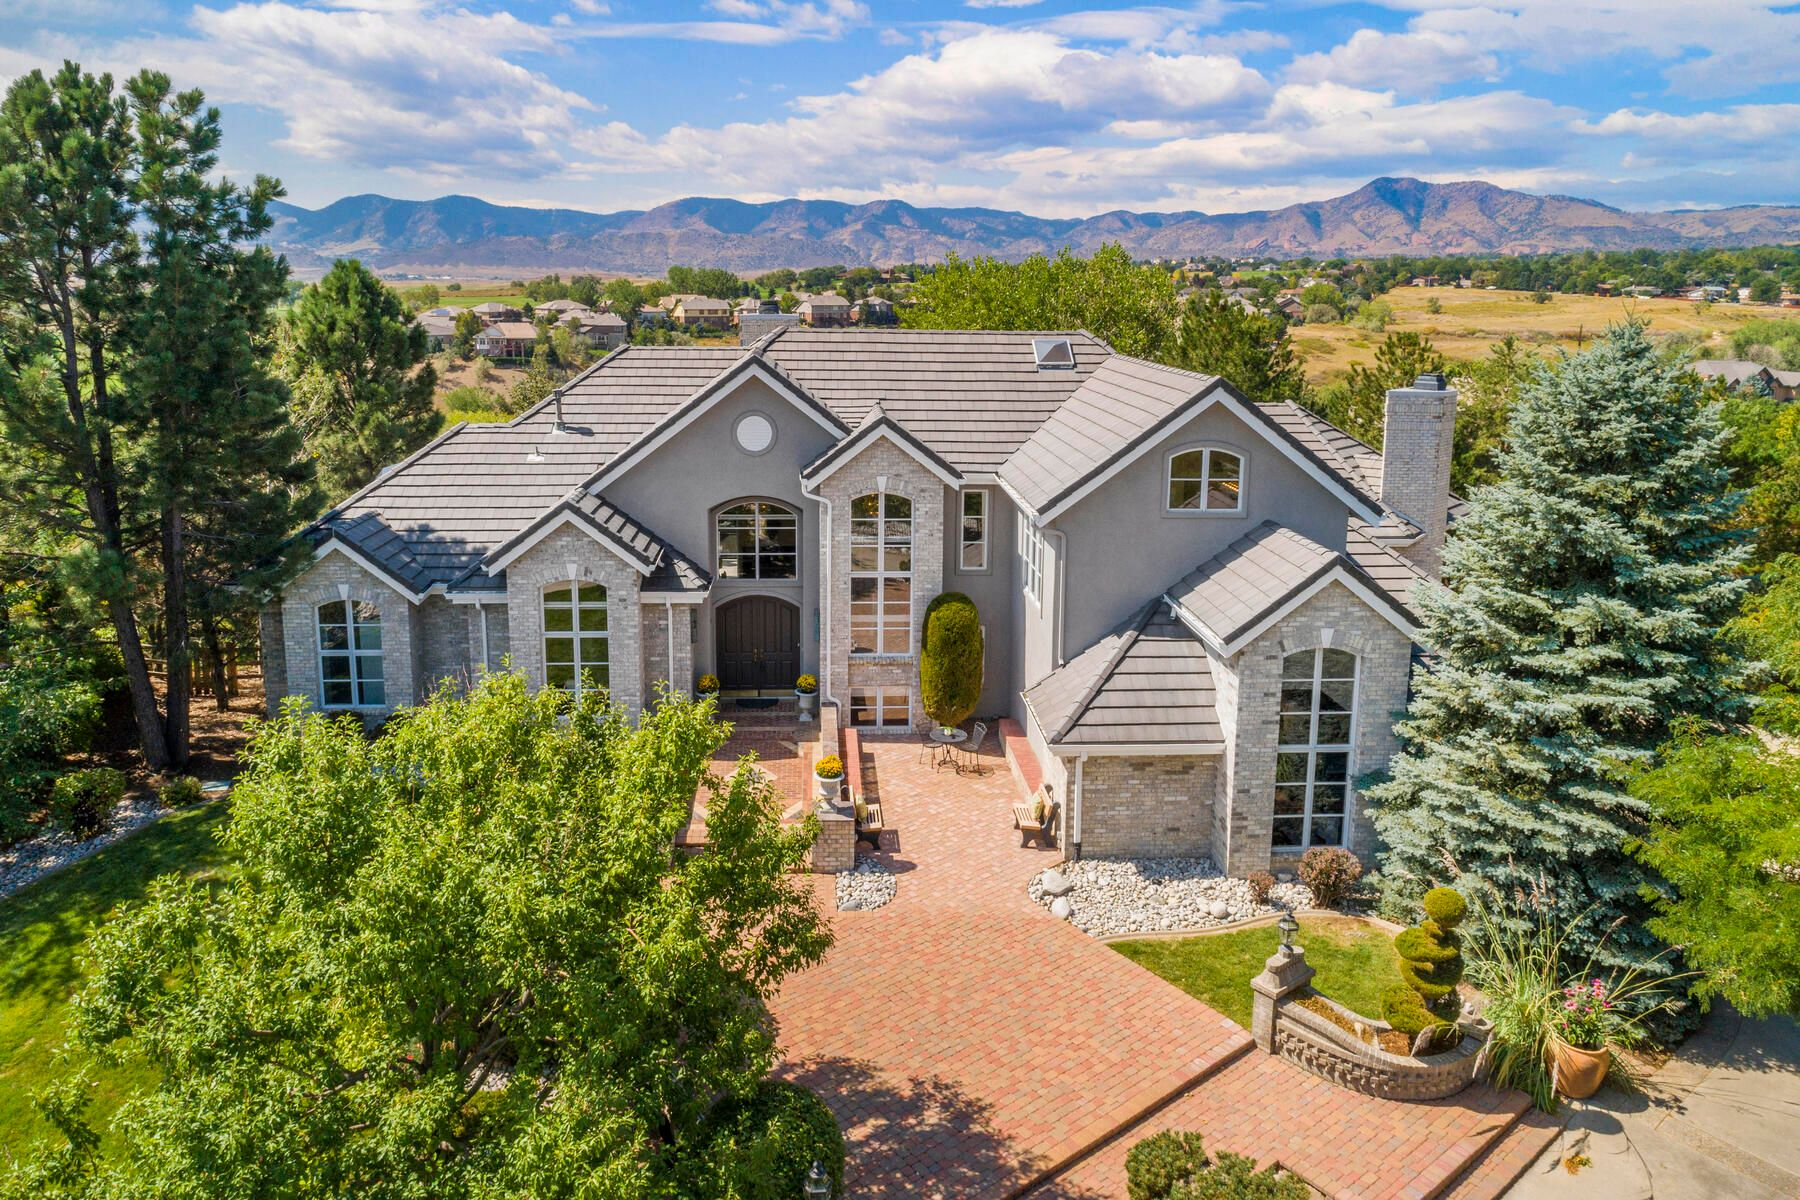 Single Family Homes for Sale at 11362 West Baltic Court, Lakewood, CO 80227 11362 West Baltic Court Lakewood, Colorado 80227 United States